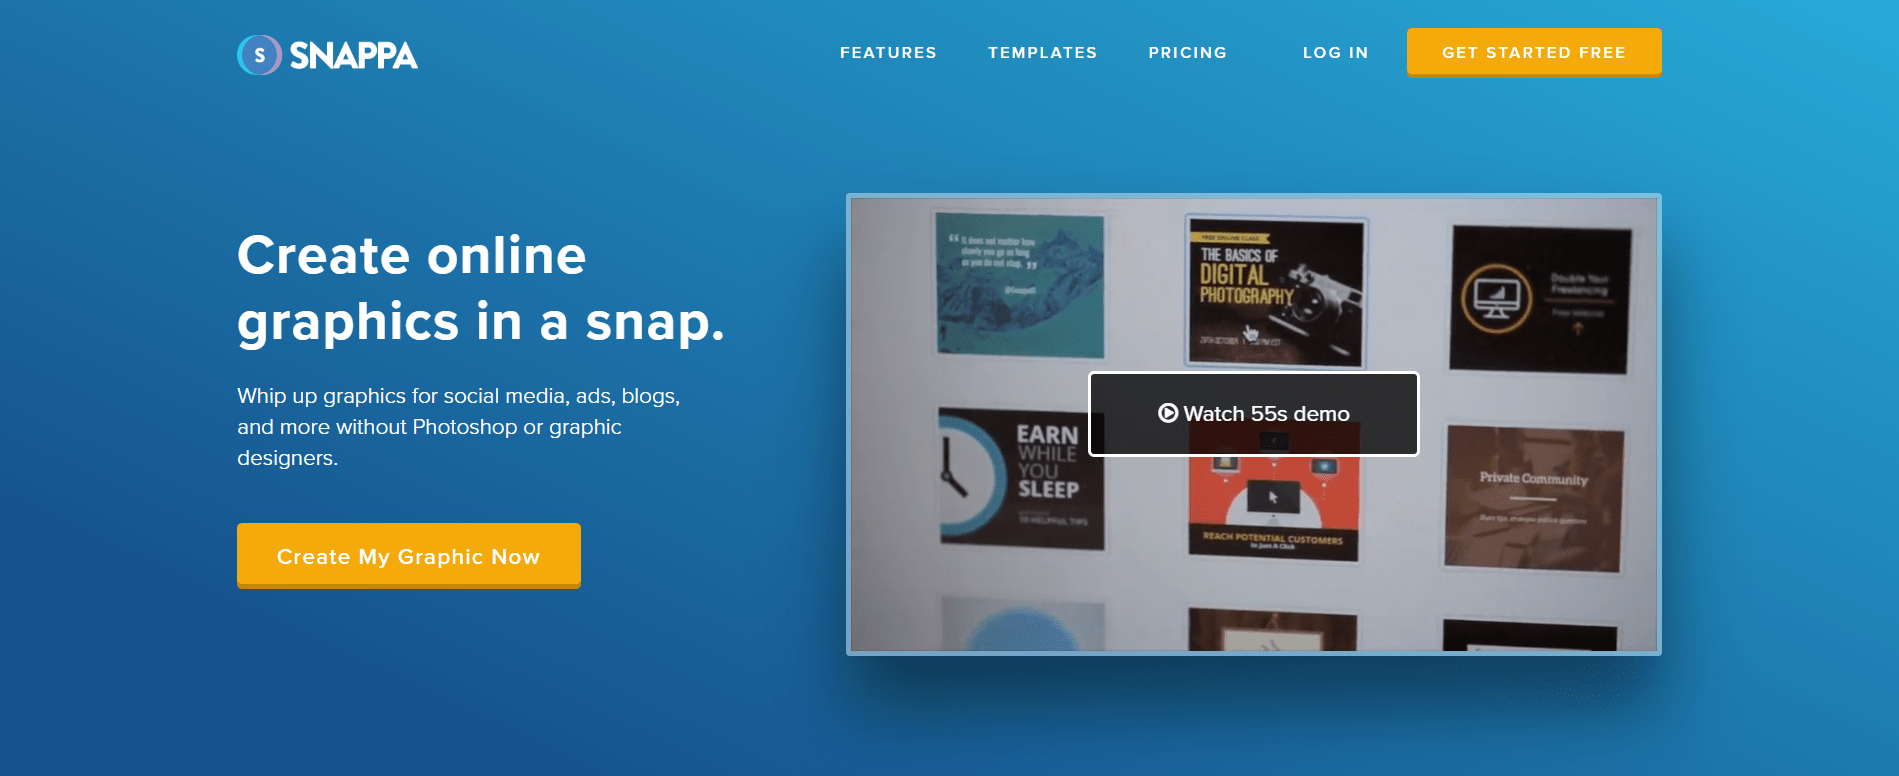 Snappa Landing Page